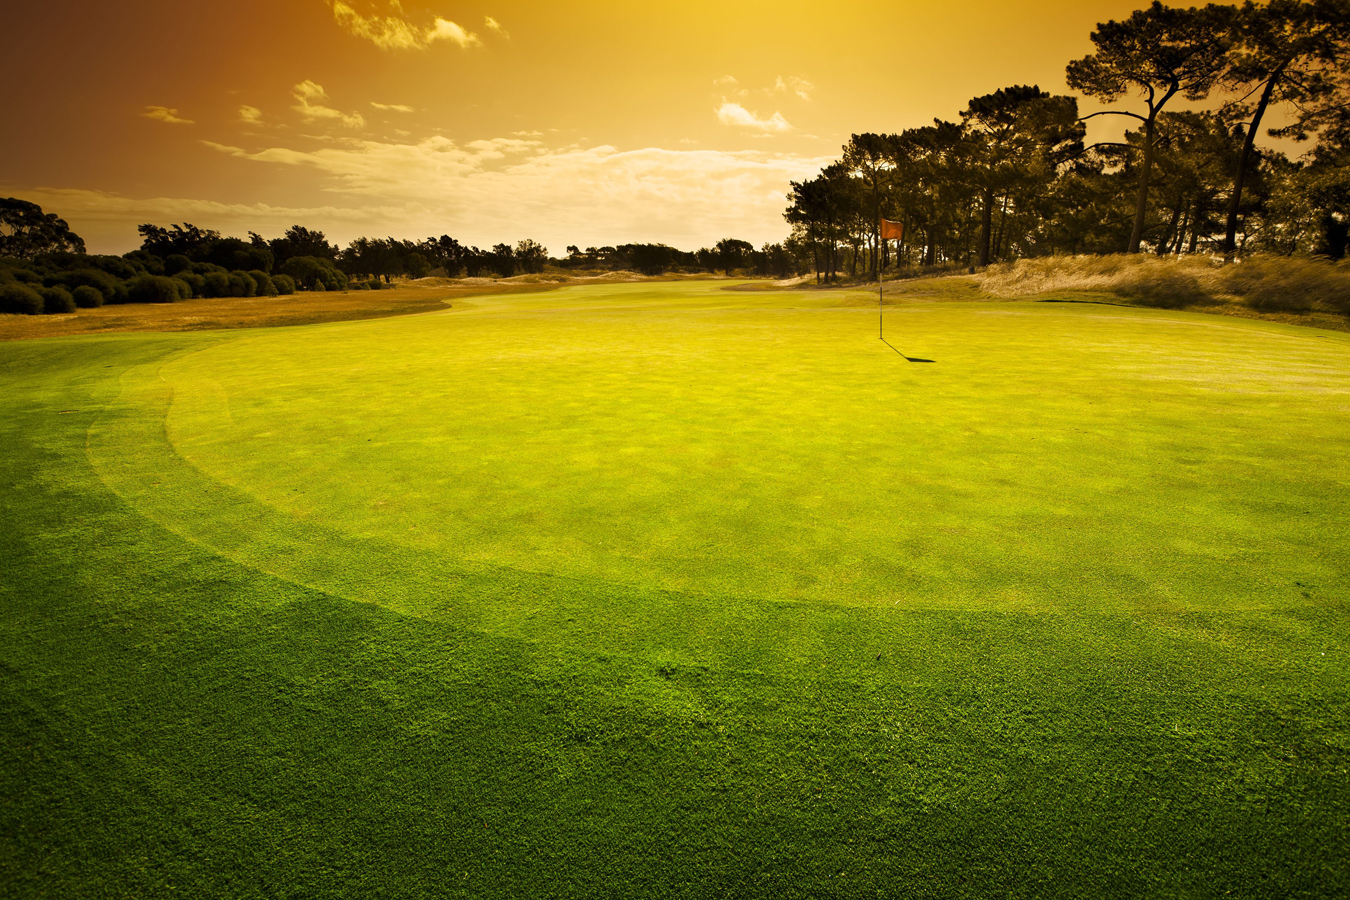 Image of Sunny Golf Green